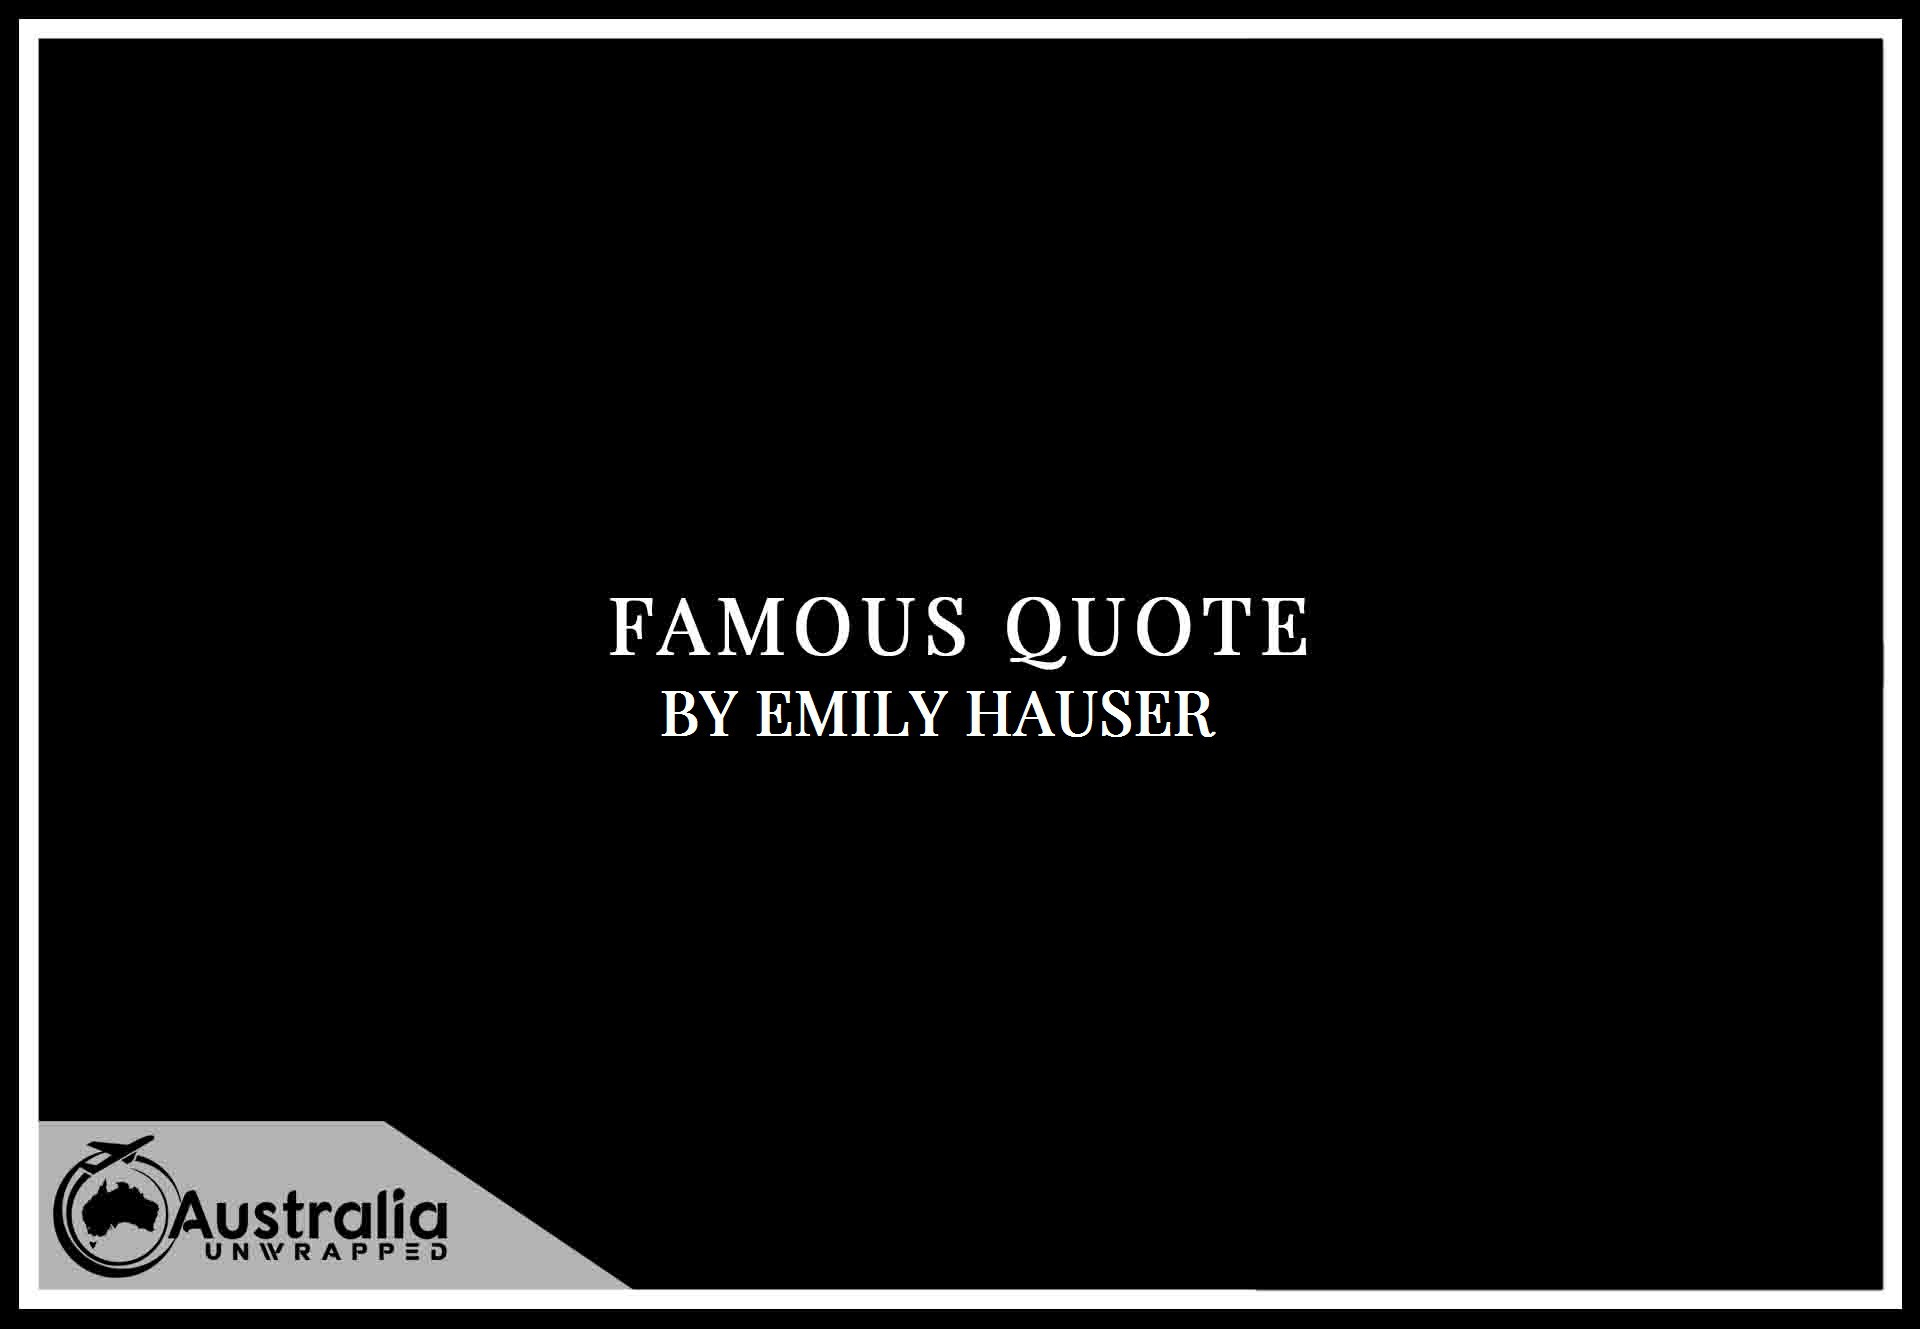 Emily Hauser's Top 1 Popular and Famous Quotes